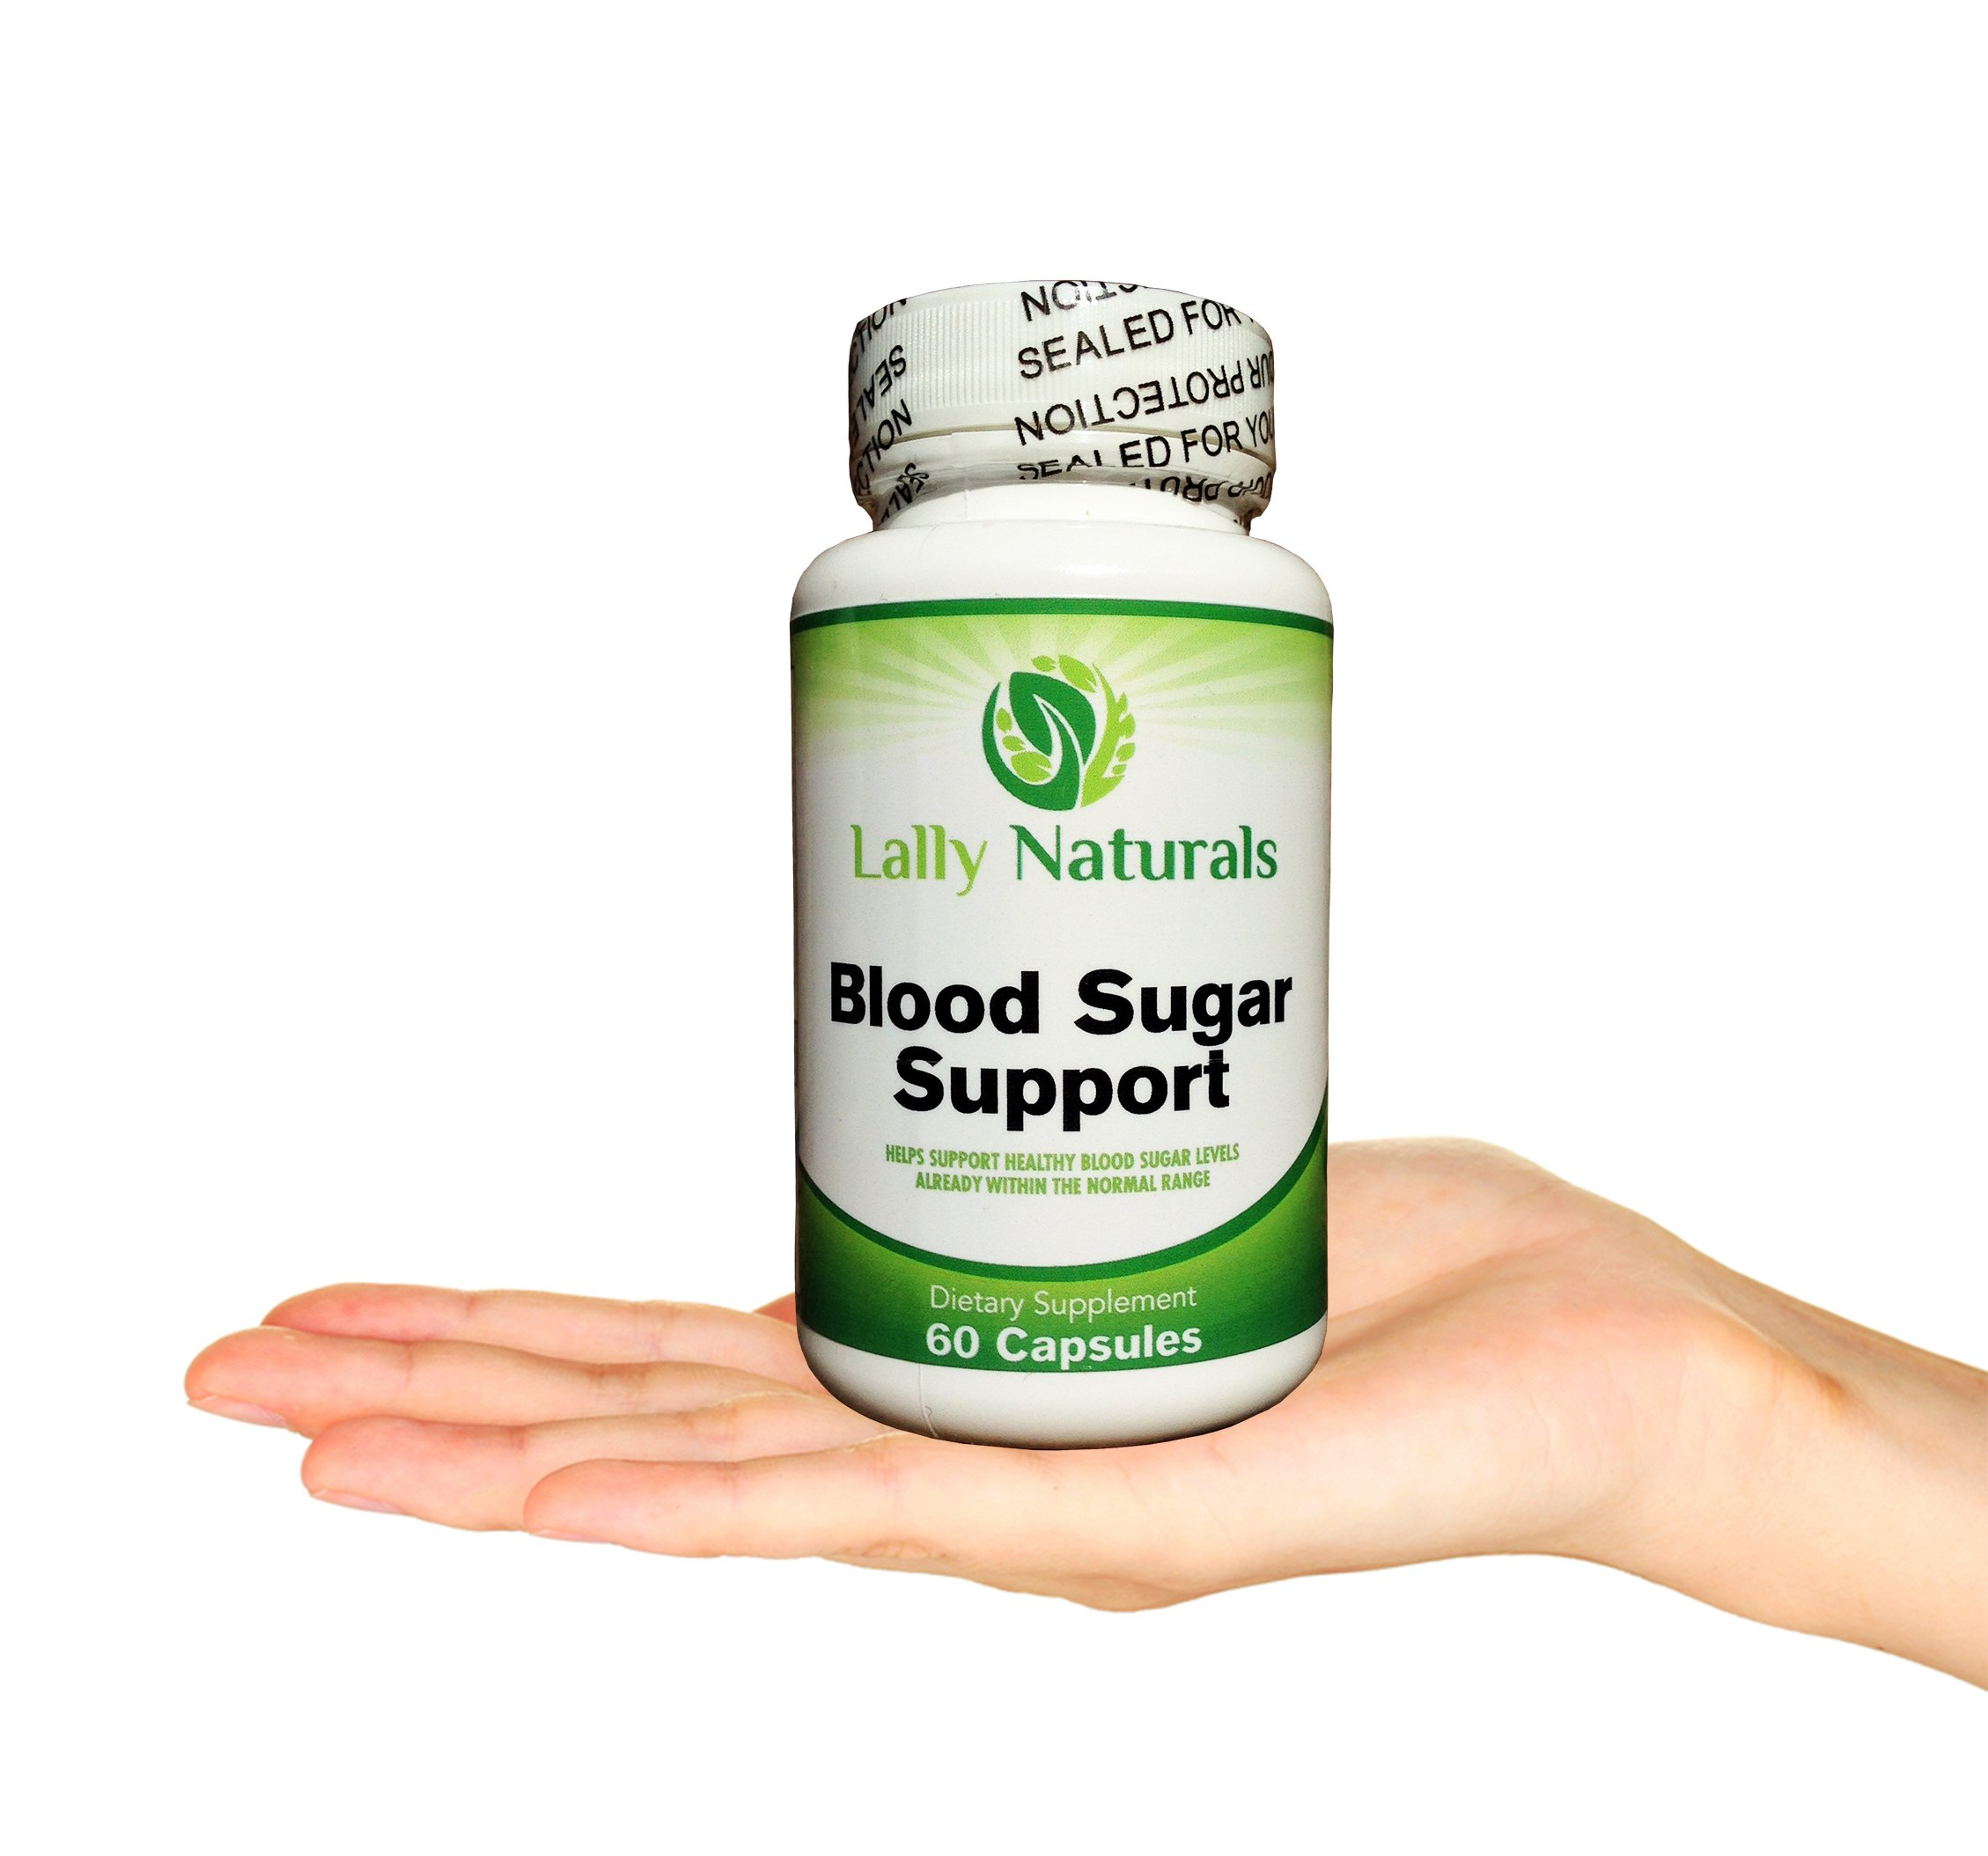 Blood Sugar Support (60 Capsules) - Promotes blood glucose control & healthy blood sugar levels Helps Weight Loss & Reduces Carb Absorption 20 Synergistic Natural herbs including Cinnamon & Chromium